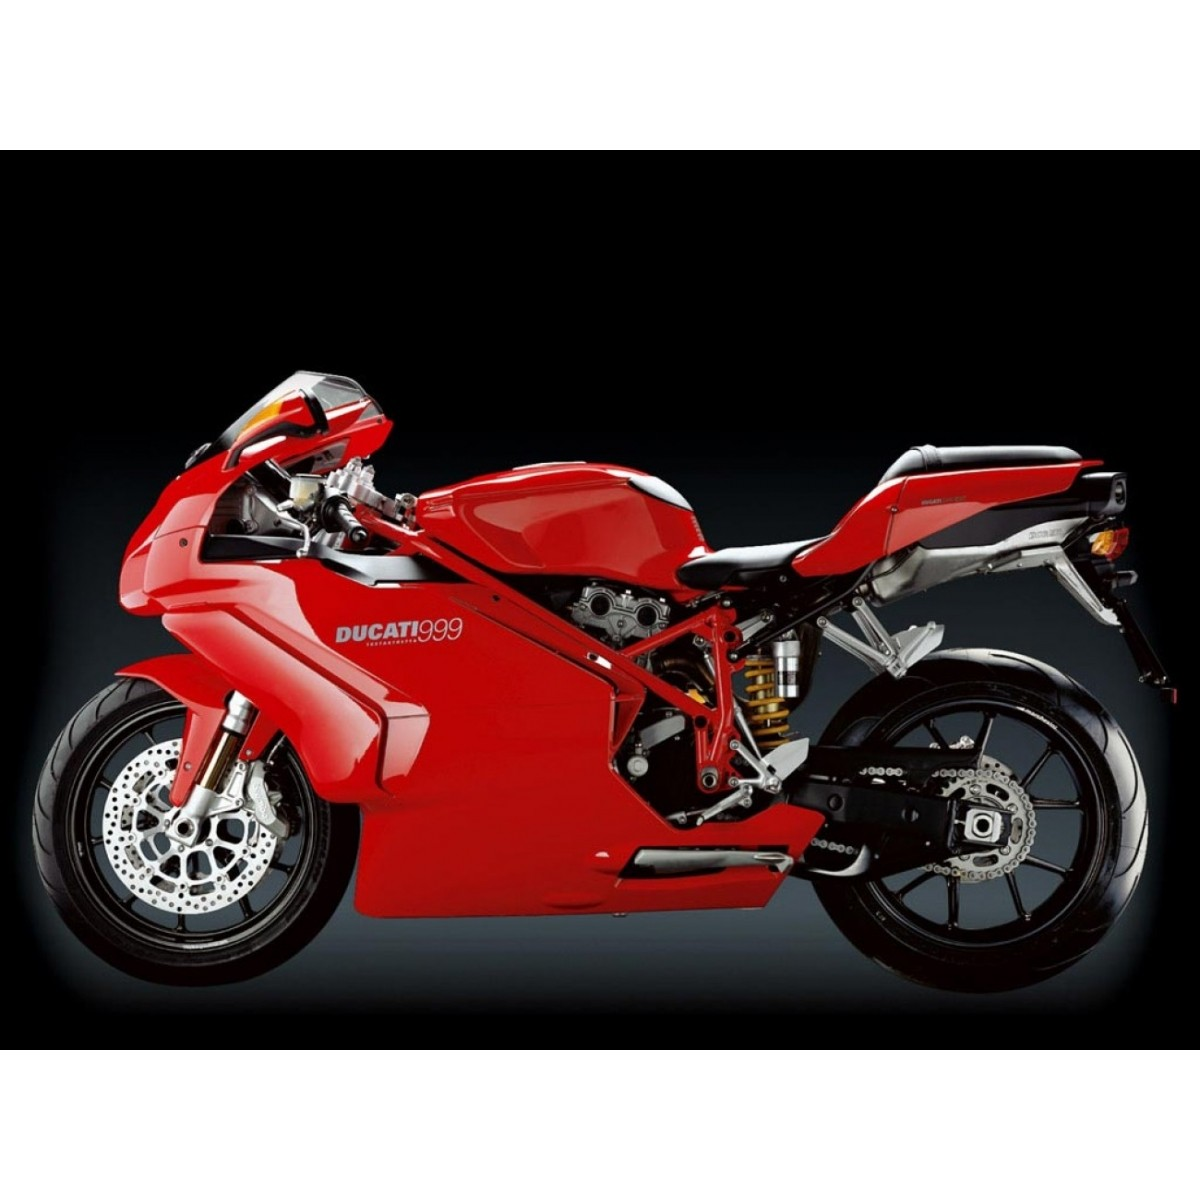 Kit Adesivos Ducati 999 Desmoquattro Performance Dct99902